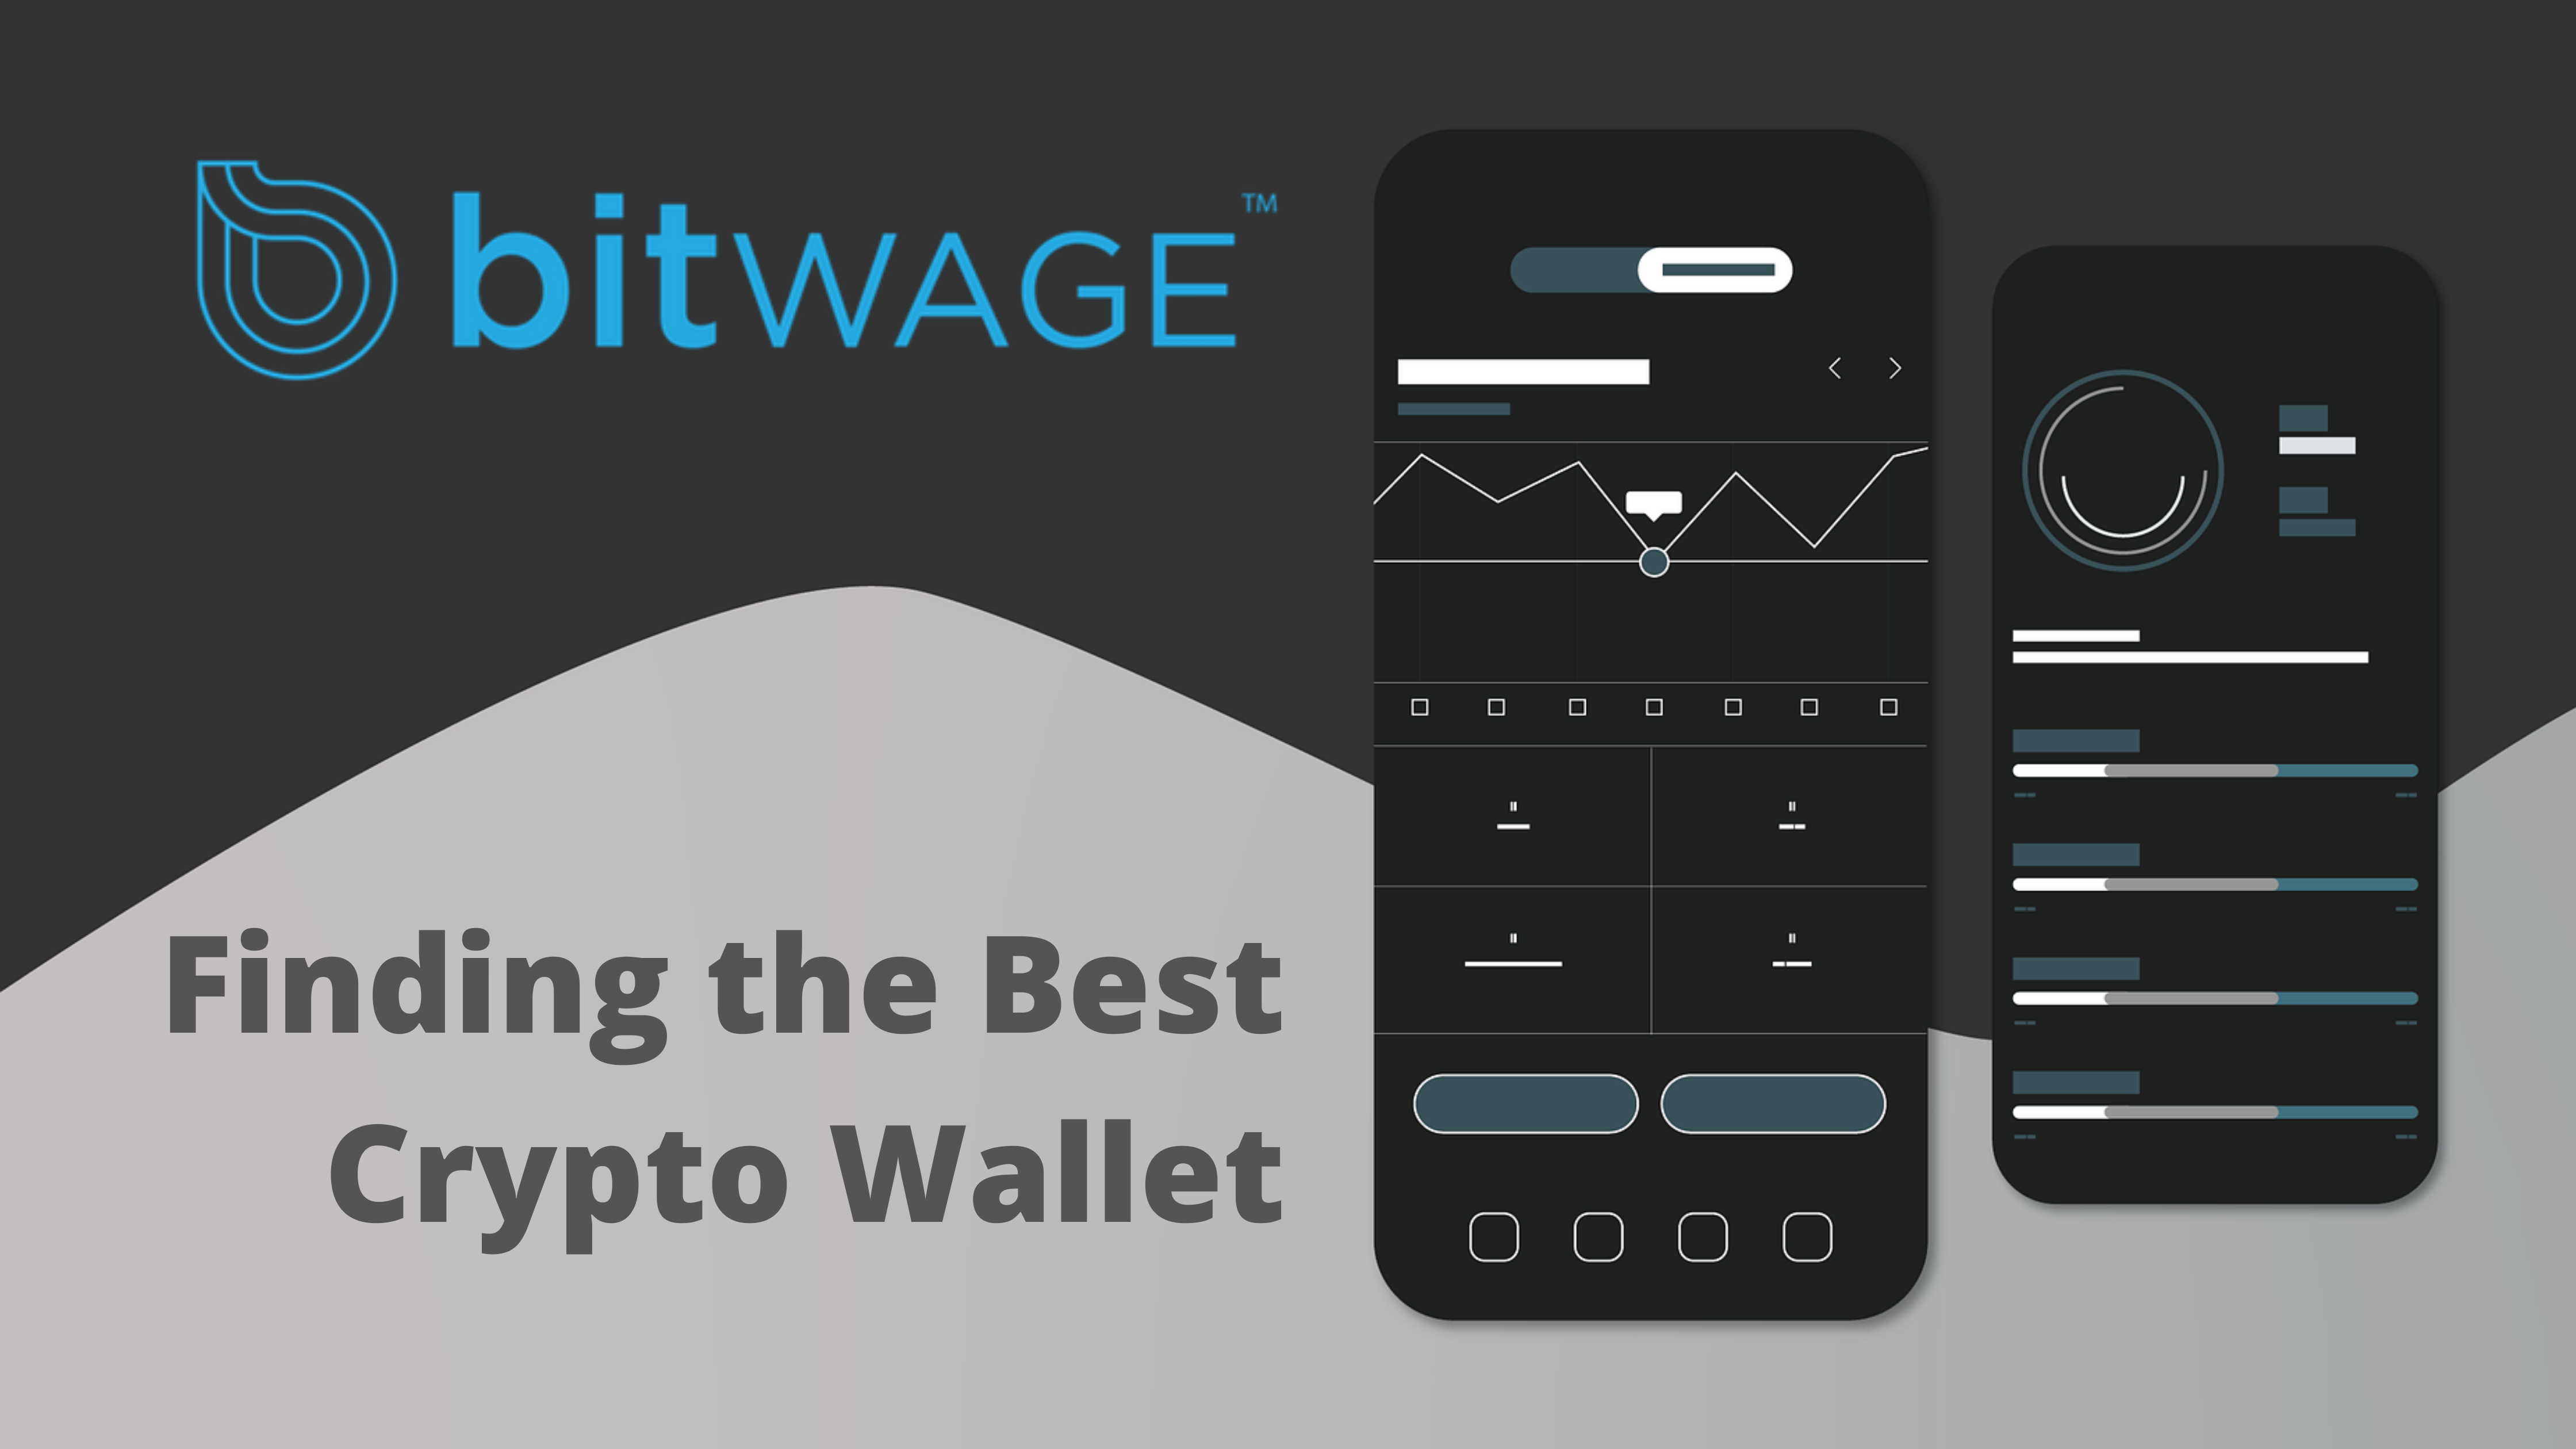 The Only Guide You Need to Find the Best Crypto Wallet